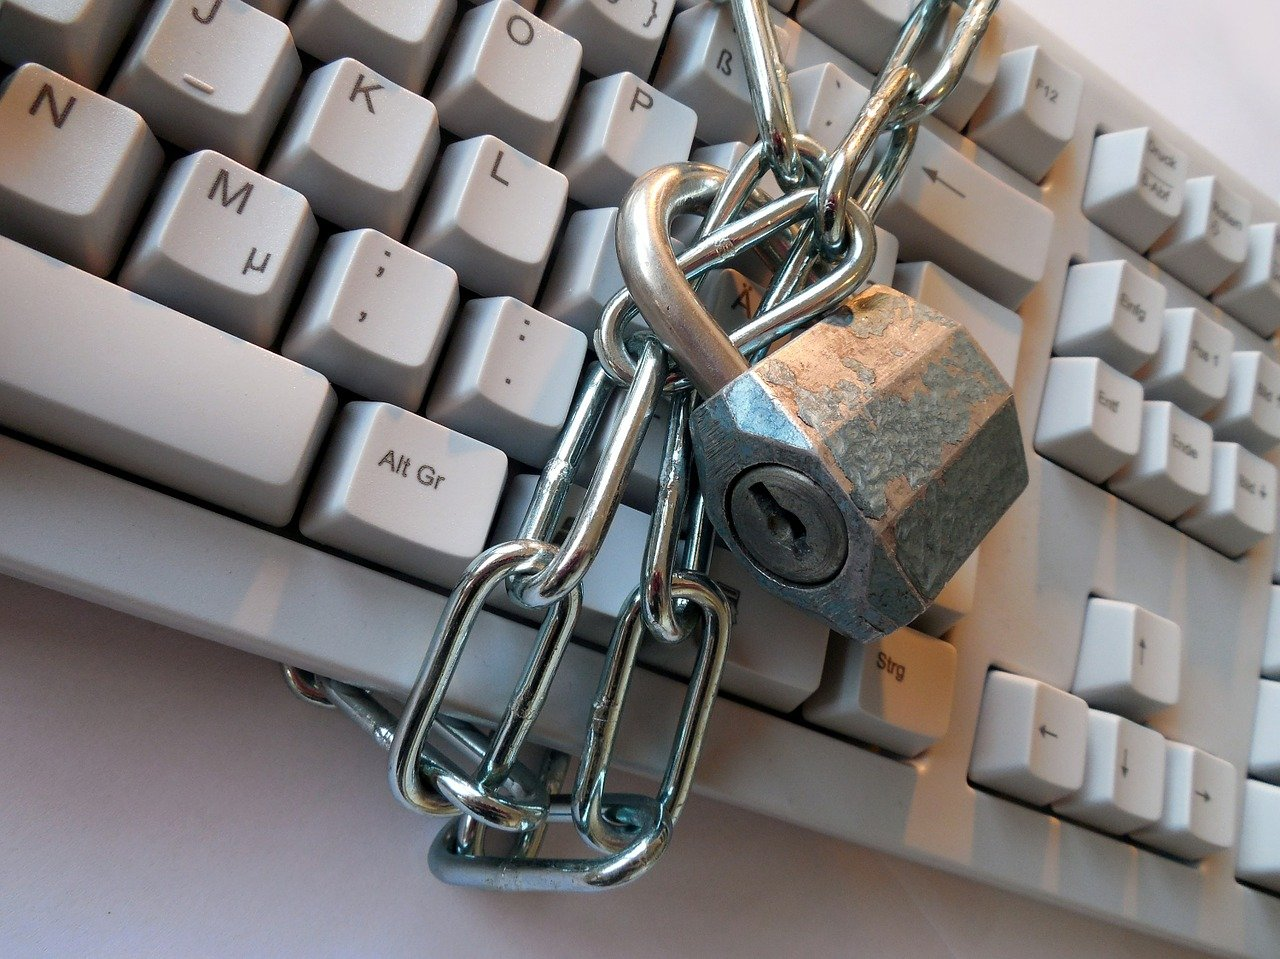 How To Securely Destroy Data